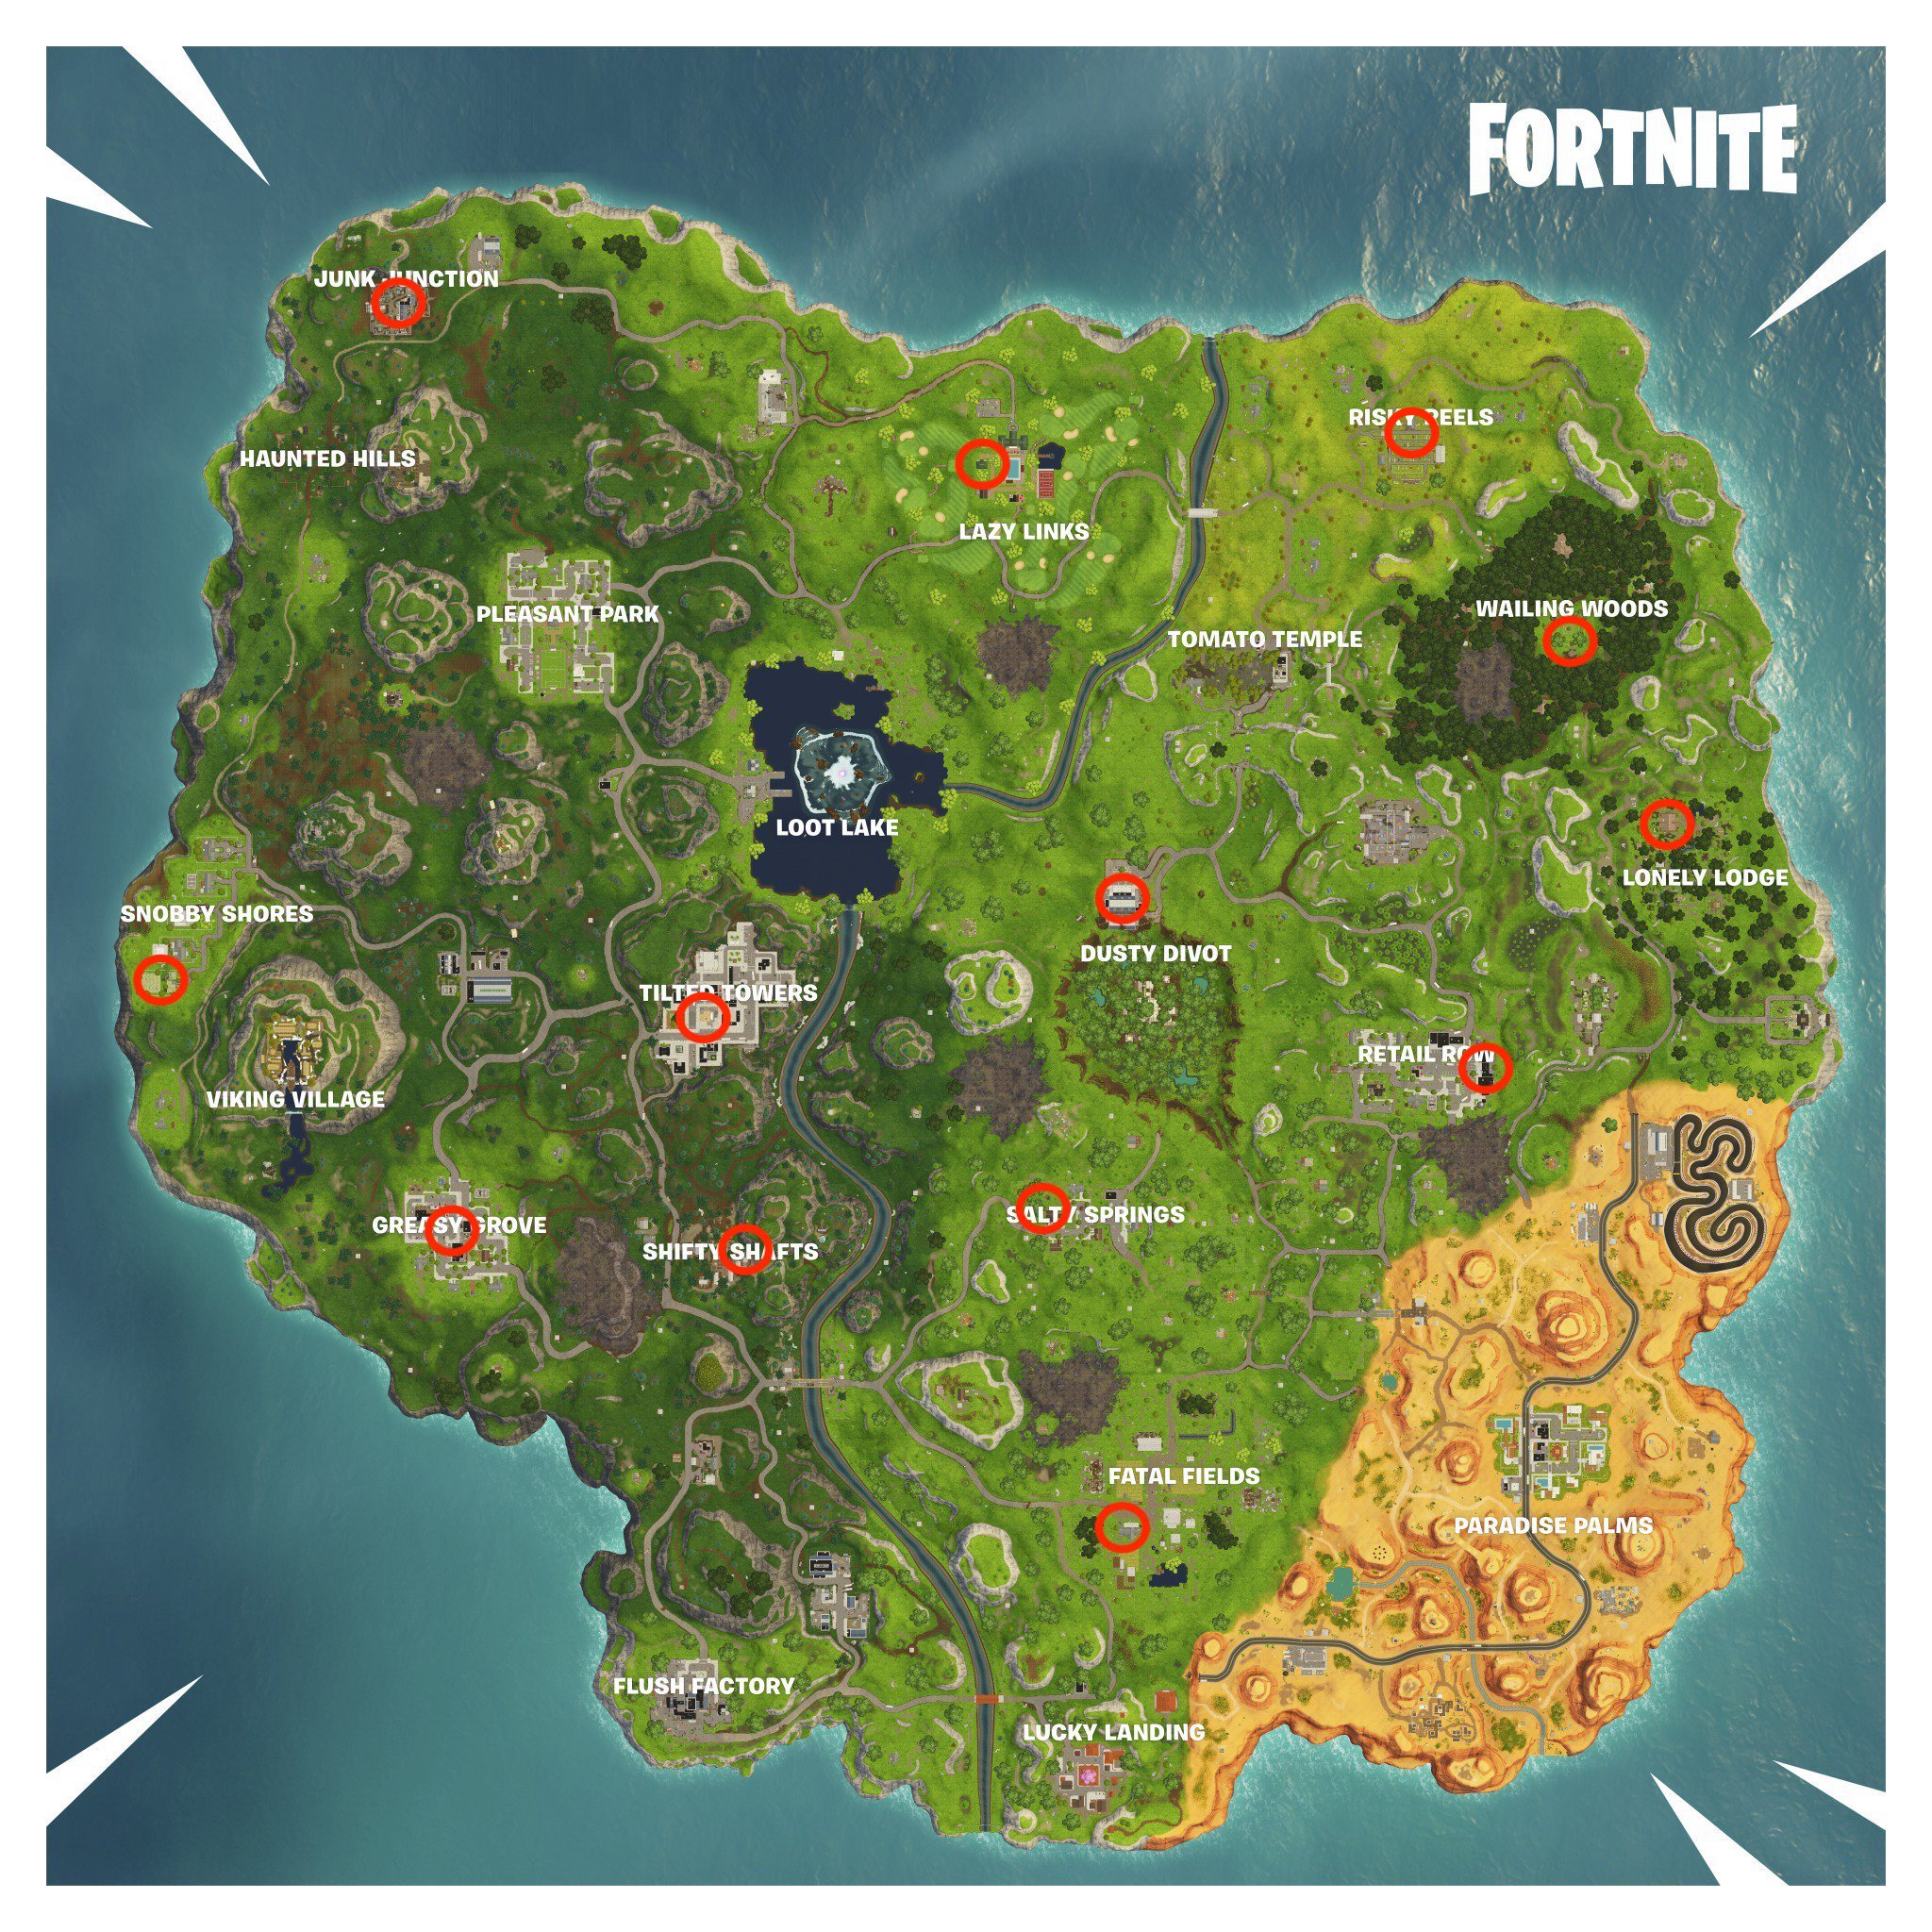 Fortnite Fish Trophy Locations Map Video Guide For Dancing In